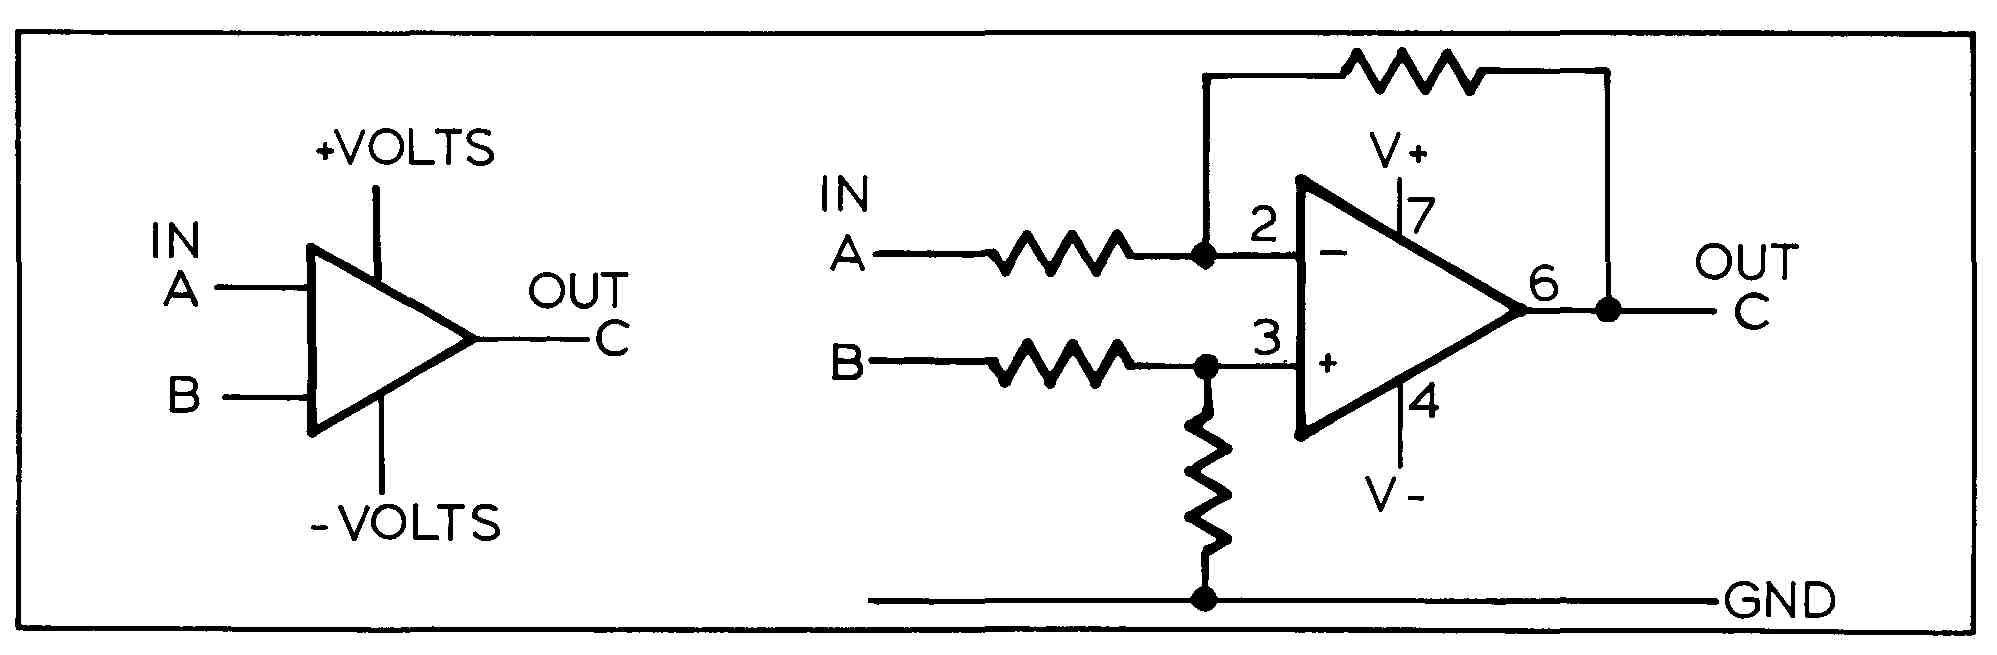 Schematic And Logic Diagrams Rs Flip Flop Using Op Amp A Two Input Operational Amplifier With External Resistors Added To The Symbol